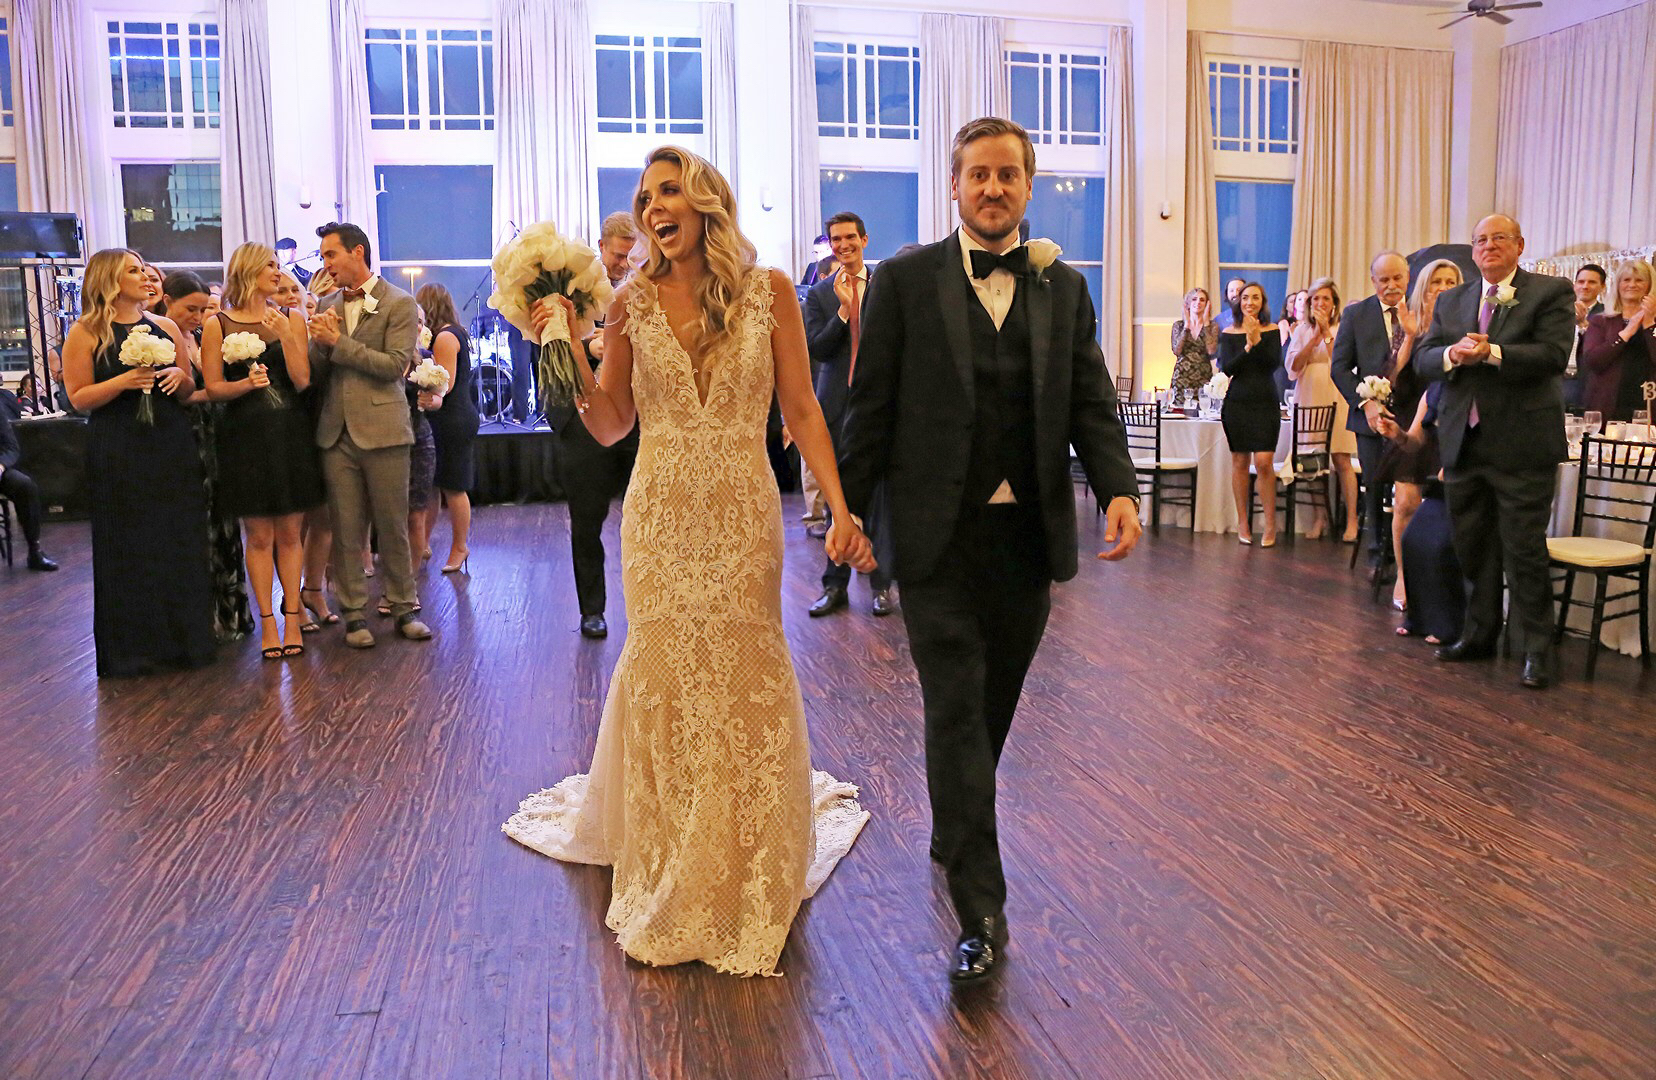 surprise wedding, how to have a surprise wedding, steps to throwing a surprise wedding